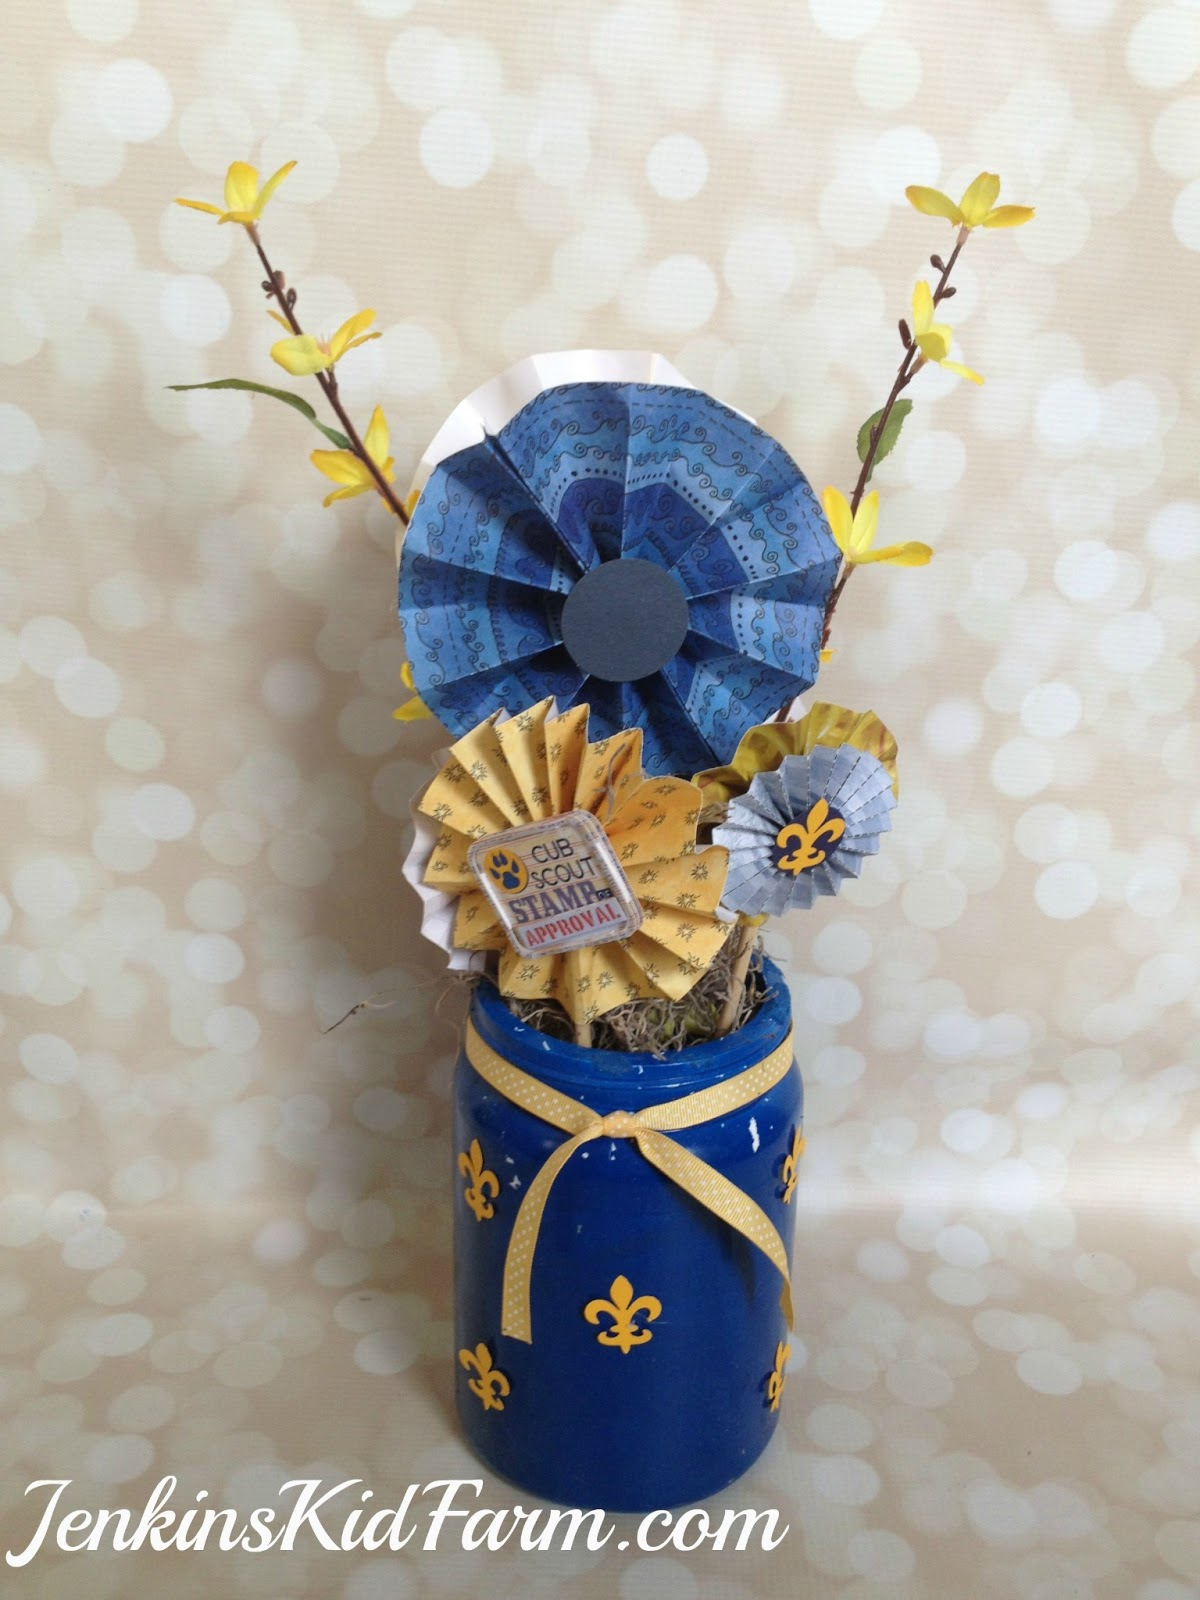 Jenkins kid farm blue and gold banquet centerpiece